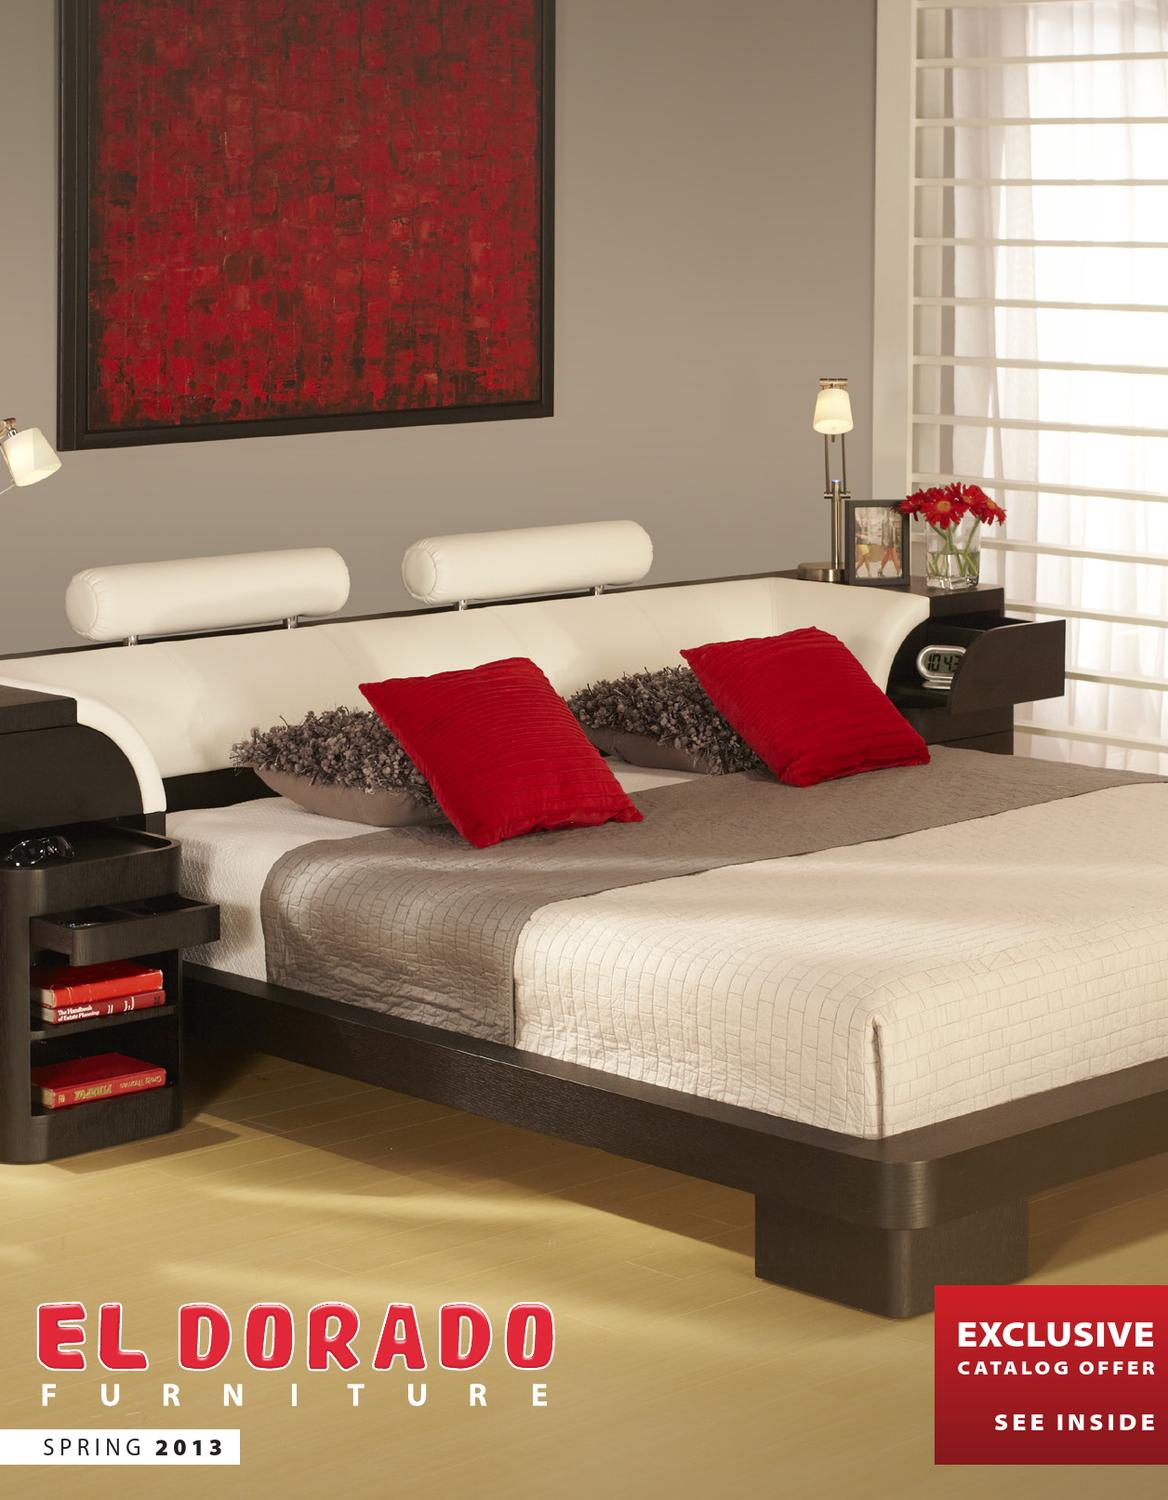 El Dorado Furniture Catalog Spring 2013 Issue By El Dorado Furniture Issuu